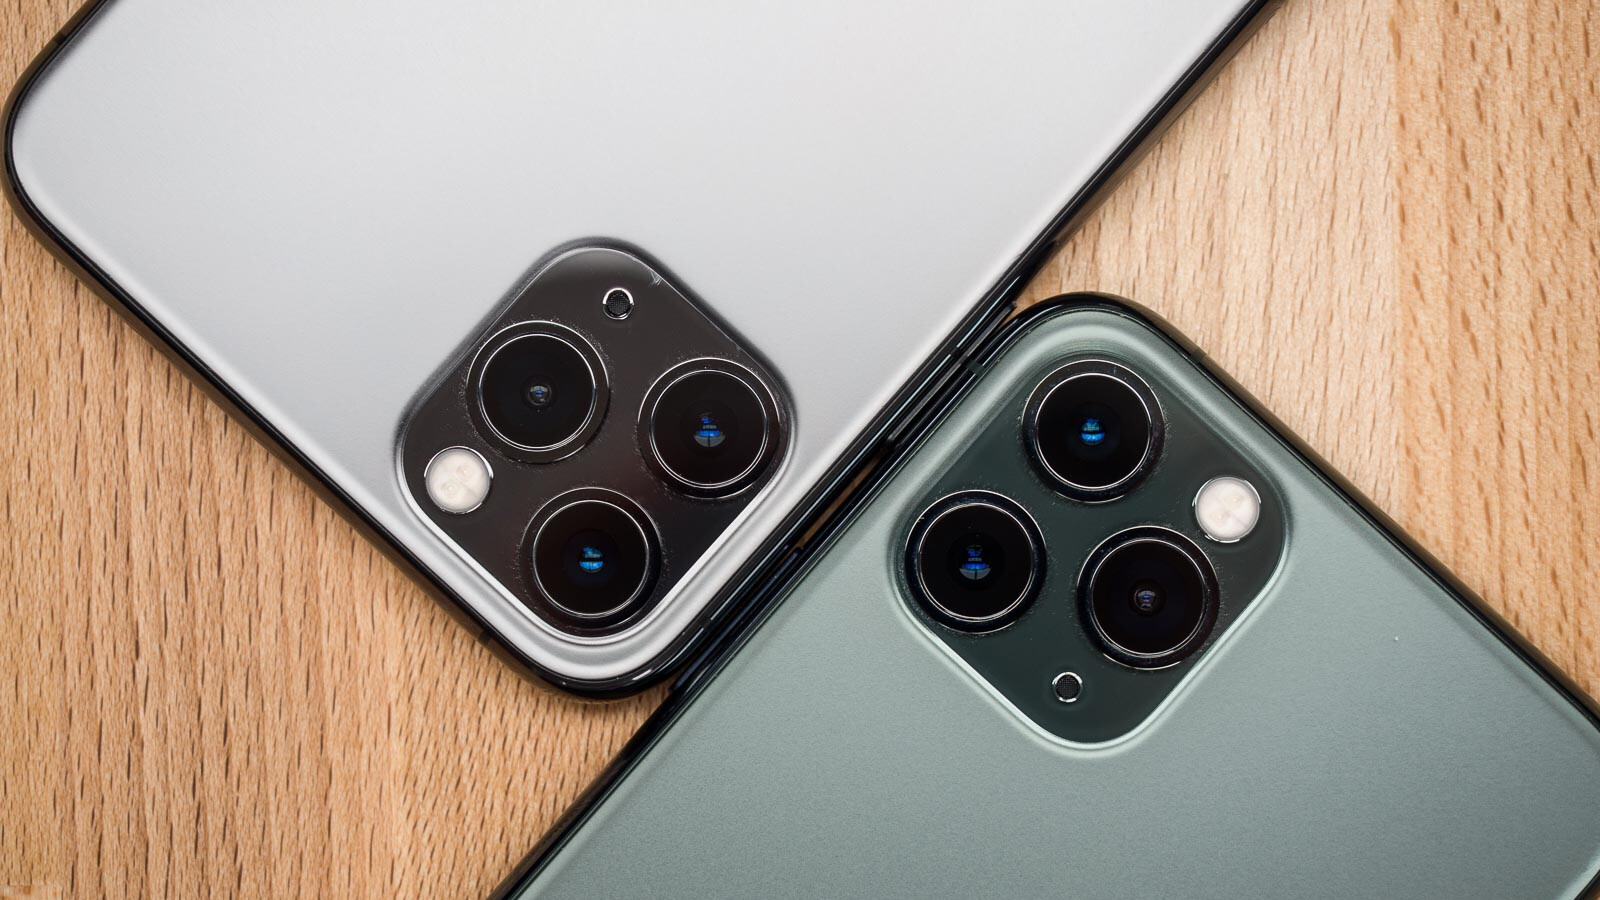 New iOS 13 update fixes major issue that affected iPhone